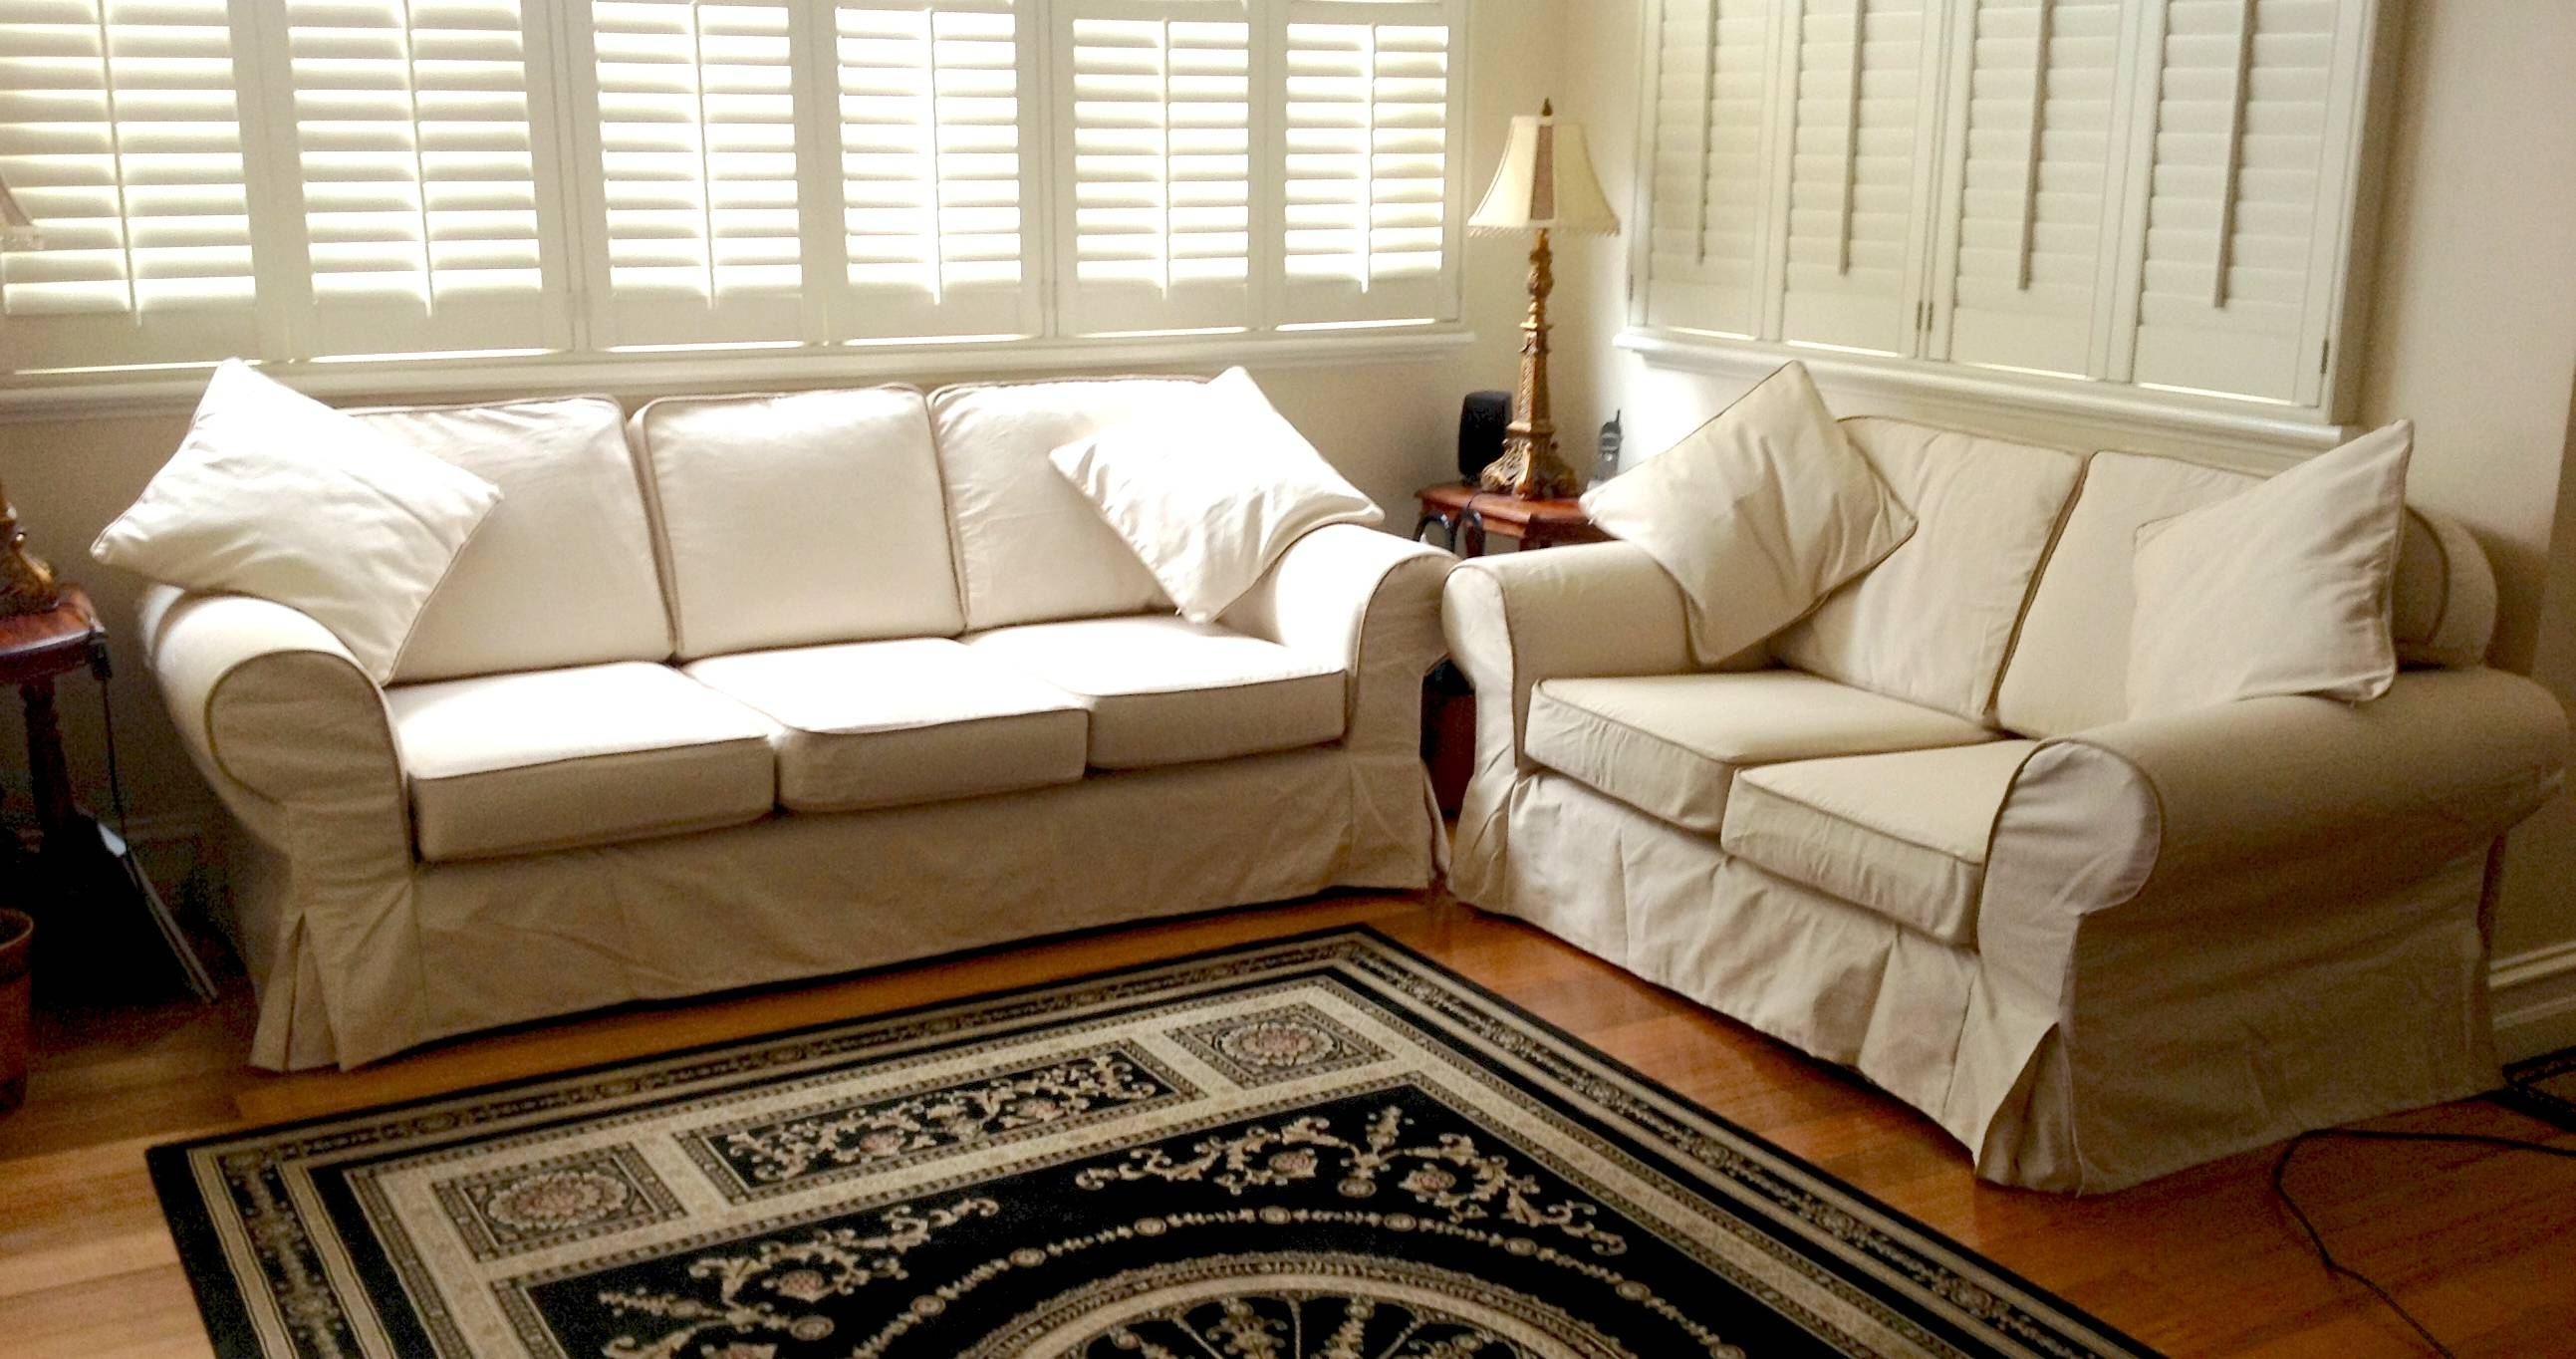 Custom Slipcovers And Couch Cover For Any Sofa Online inside Sofa Settee Covers (Image 7 of 30)